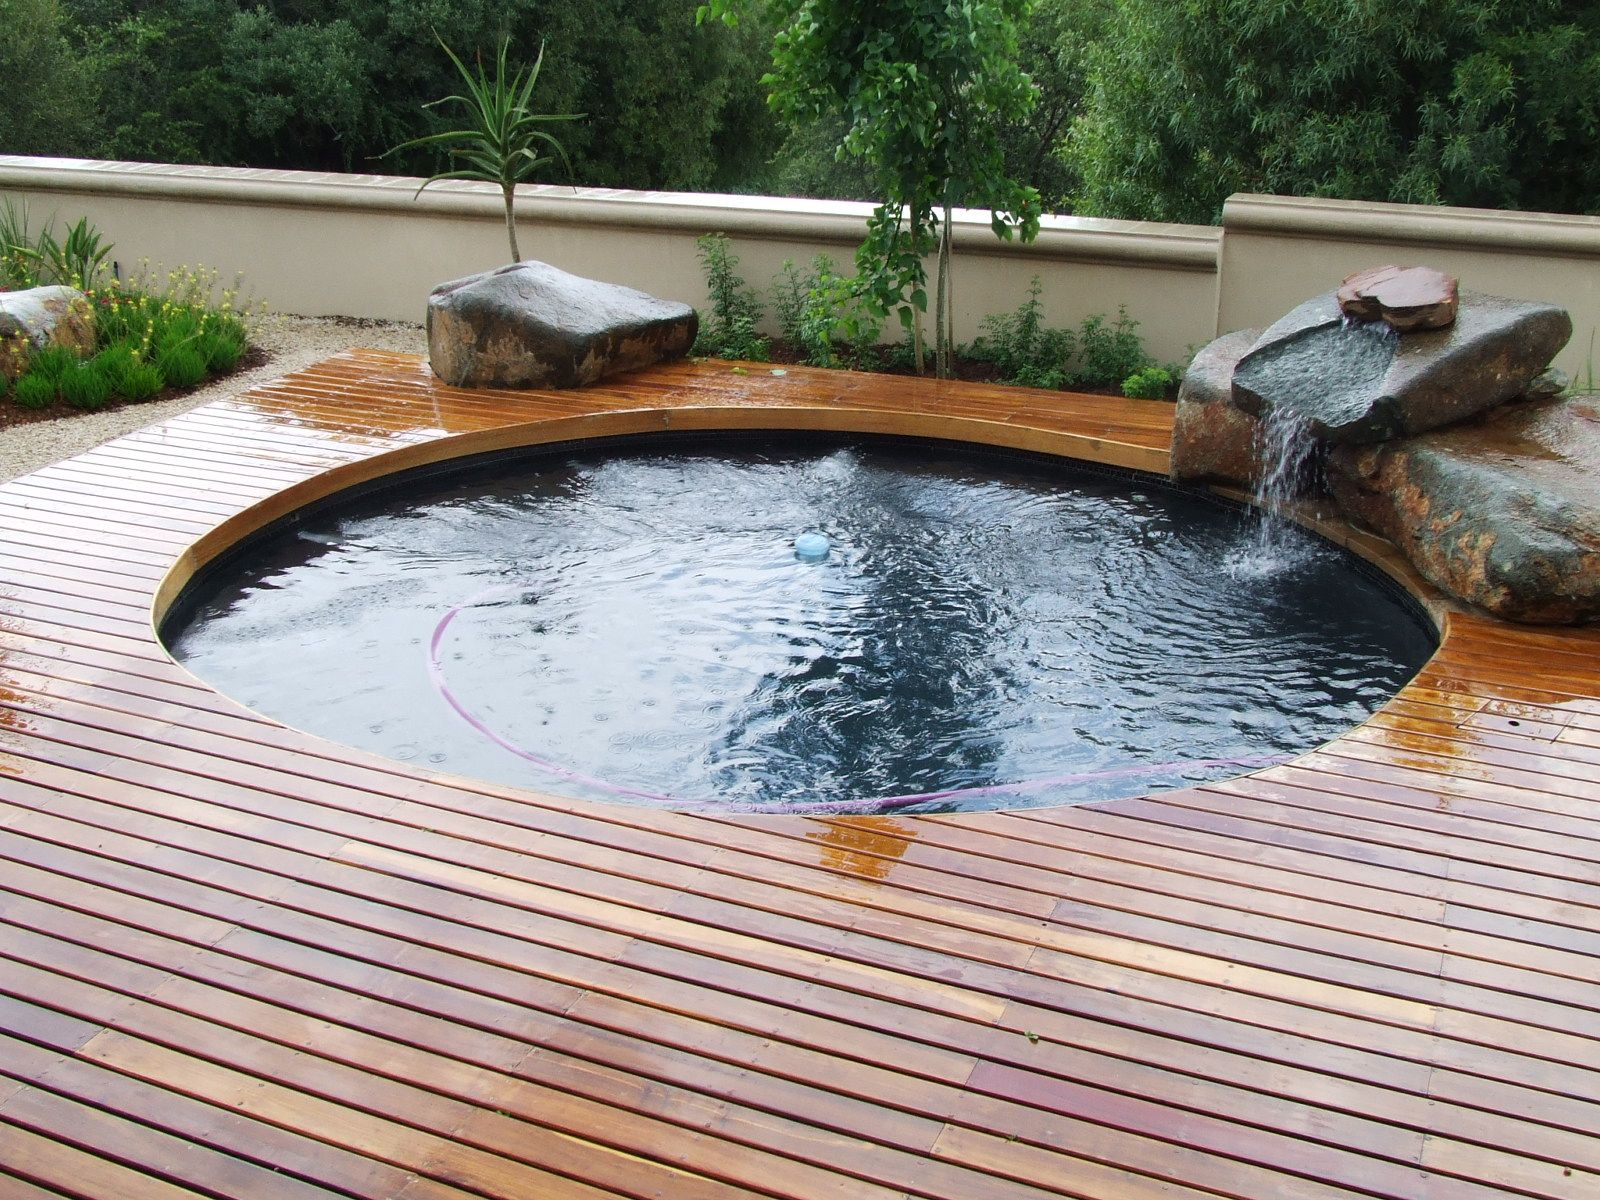 Swimming Pool:Round Small Swimming Pool Designs For Small Yard With Wooden  Deck Flooring Plus Stone Water Feature Small Pool Design to Turn the  Backyard ...